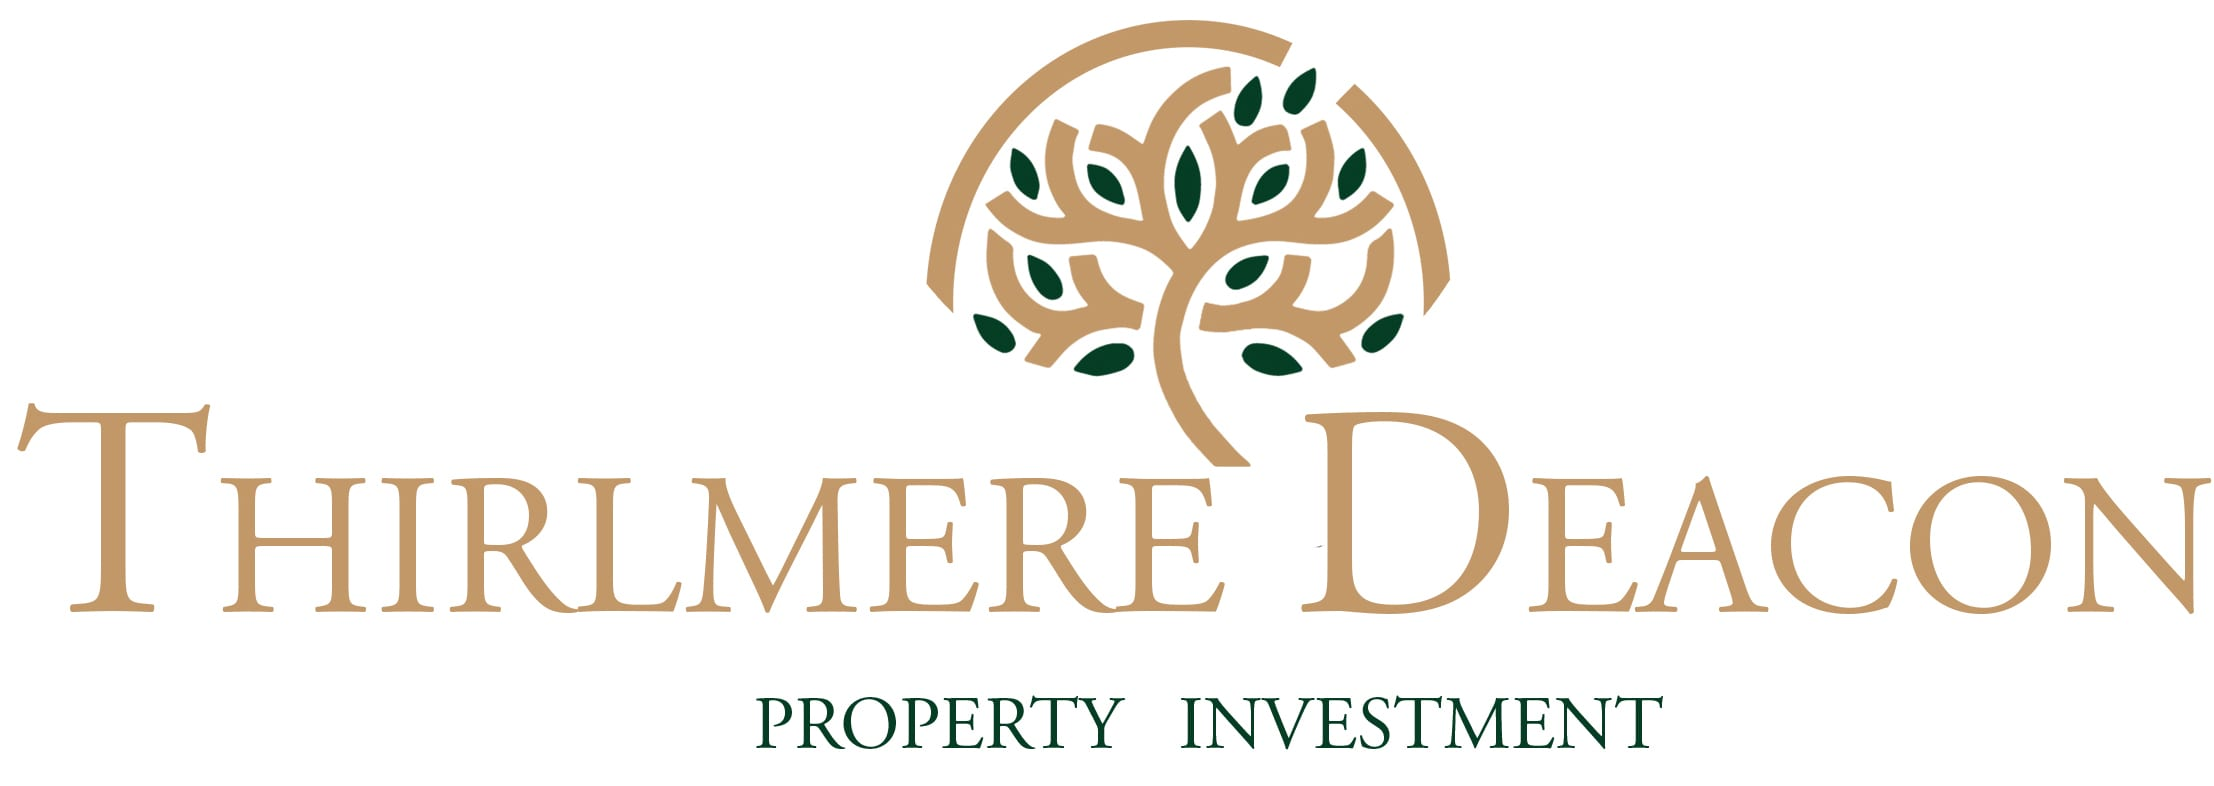 Thirlmere Deacon property investment london